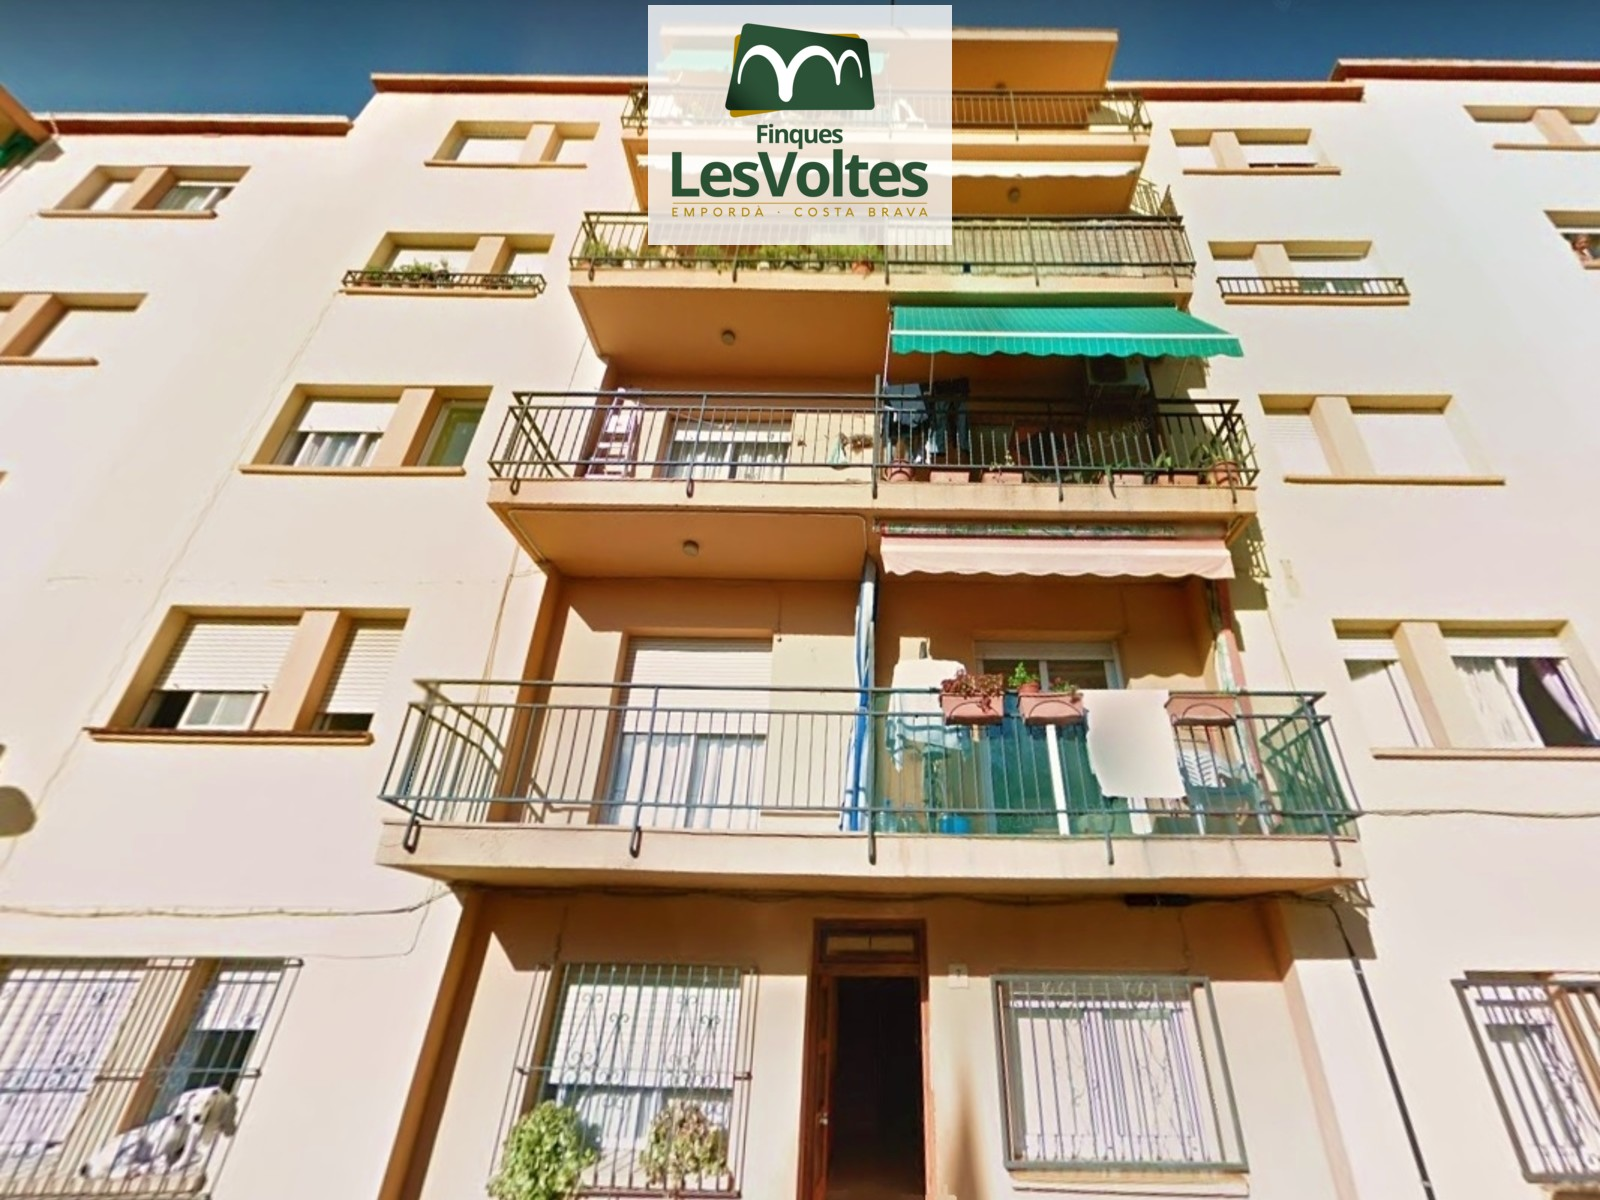 3 bedroom apartment with balcony for sale in residential area of Palamós.